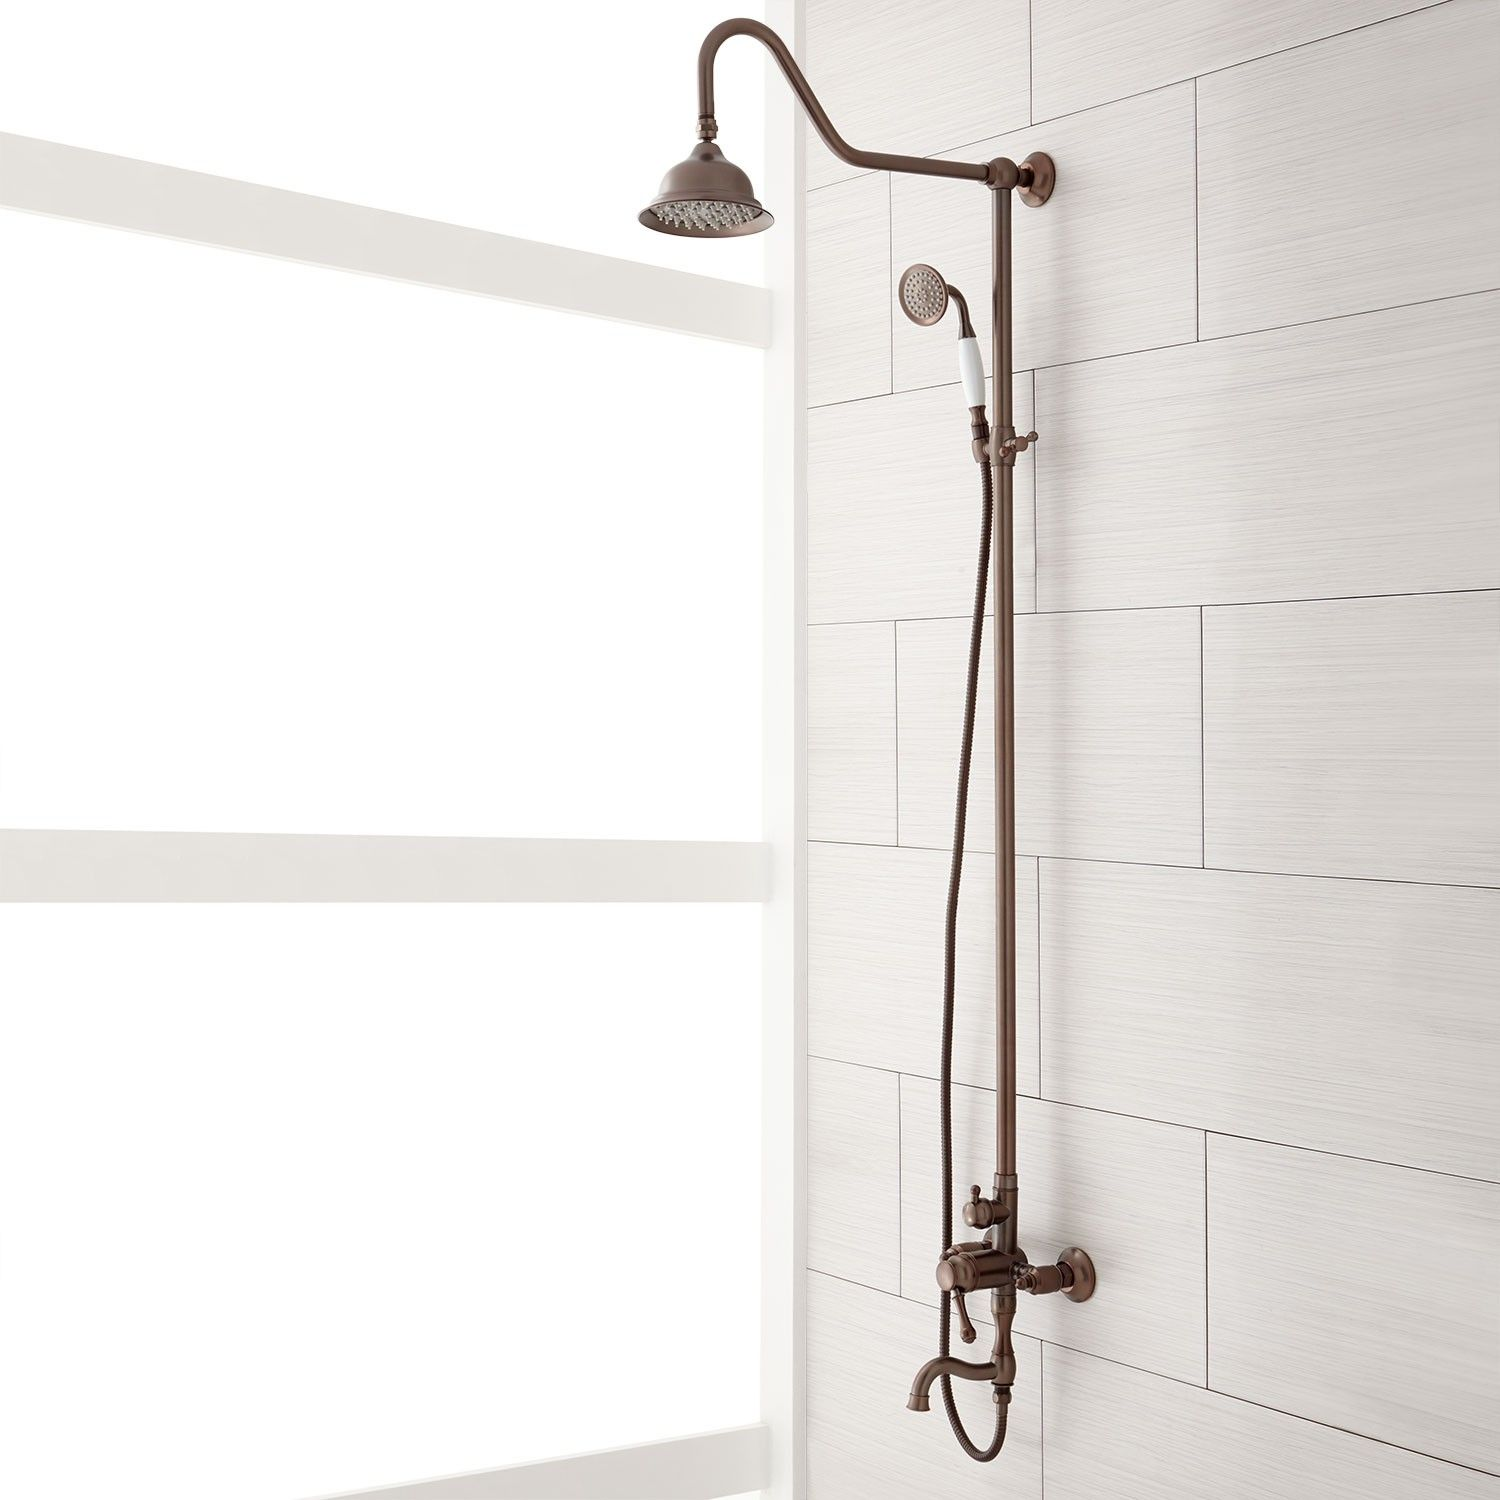 Exposed Pipe Shower System With Tub Faucet.Pin On Home Wishes